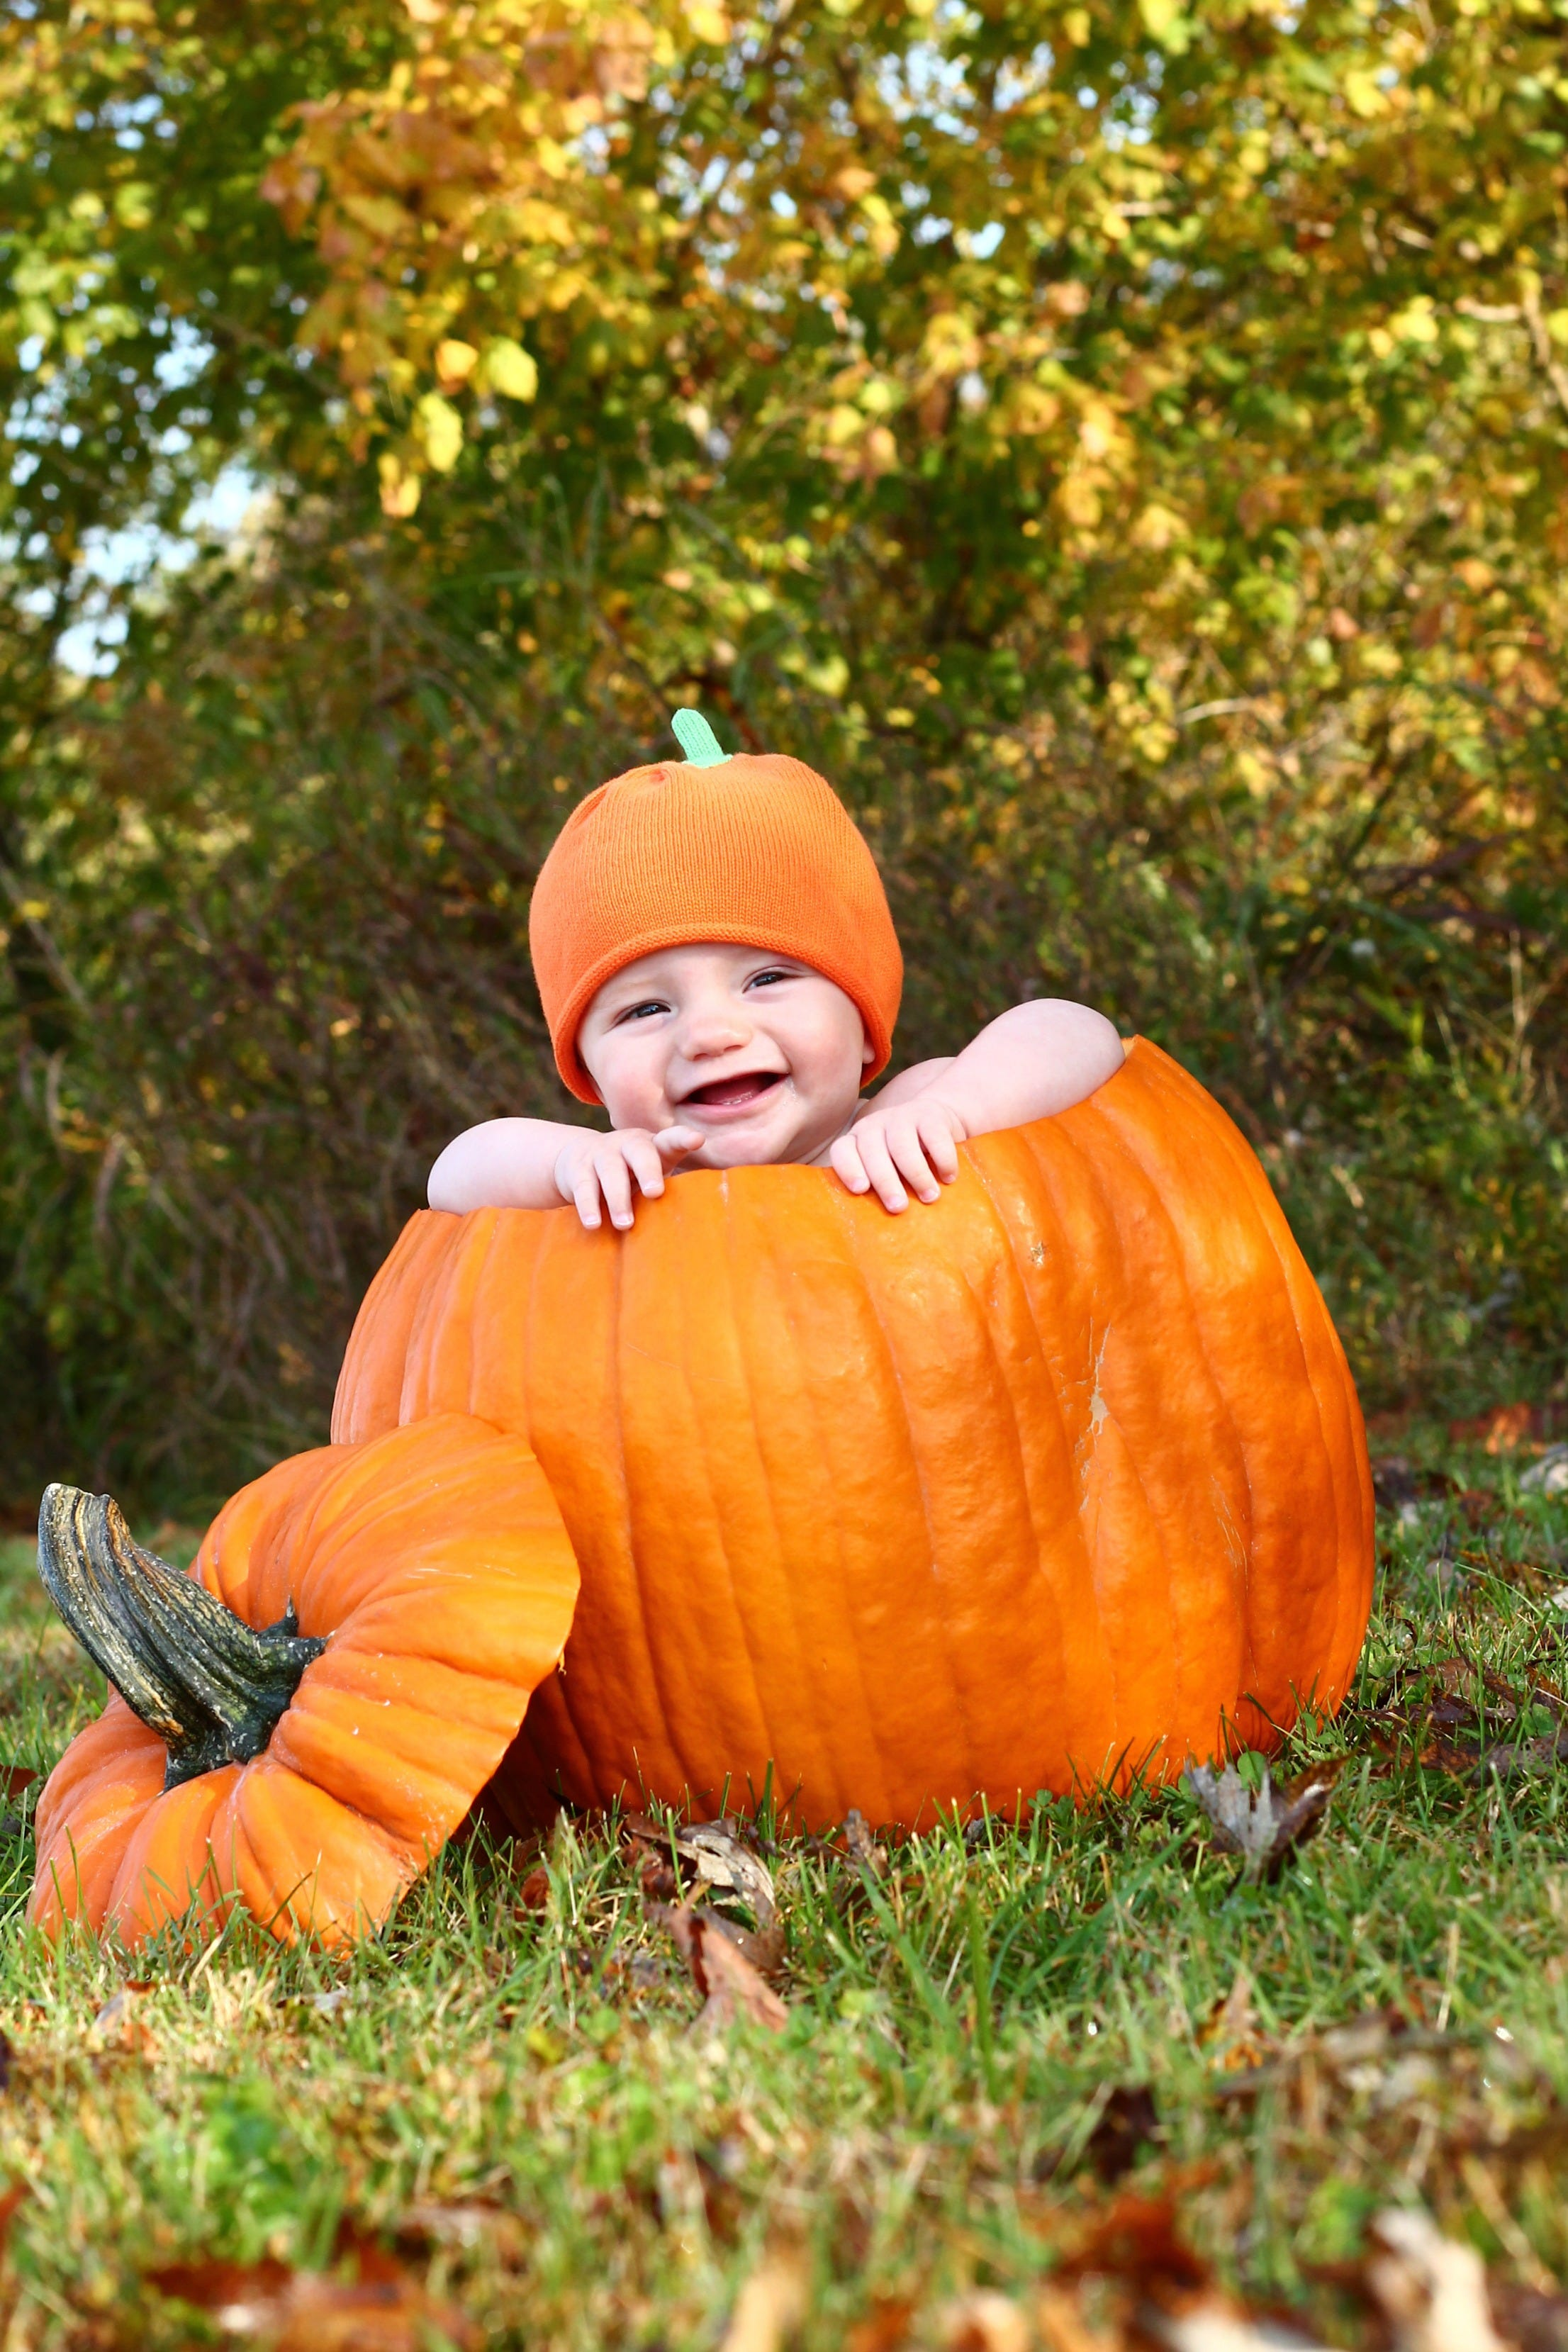 Watch 10 Photos of Babies in Pumpkins That Are Too Pure for Words video